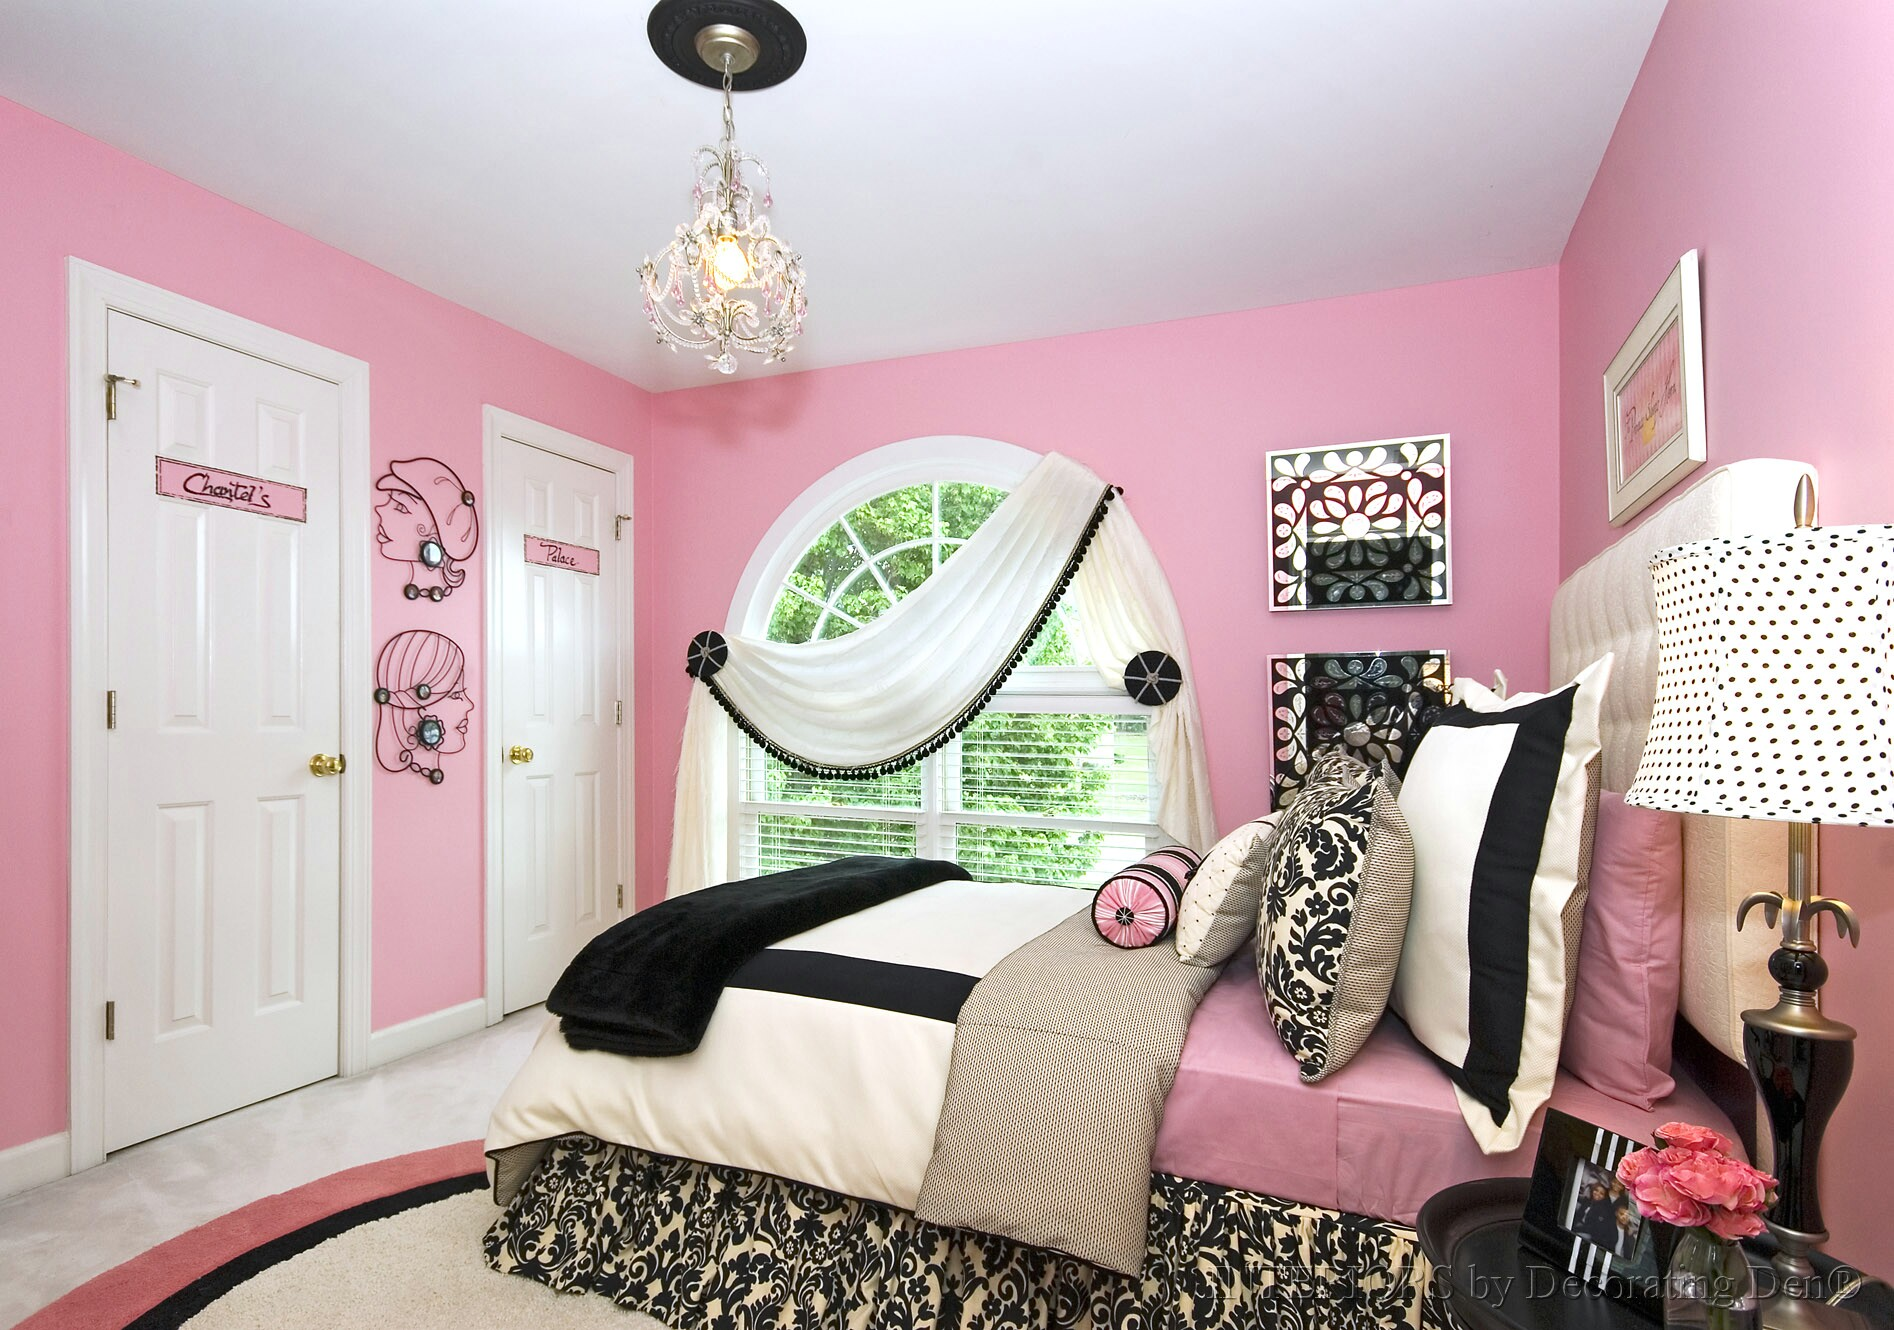 A Bedroom Makeover for a Teen Girl's Room | Devine ... on Teen Room Decoration  id=65983